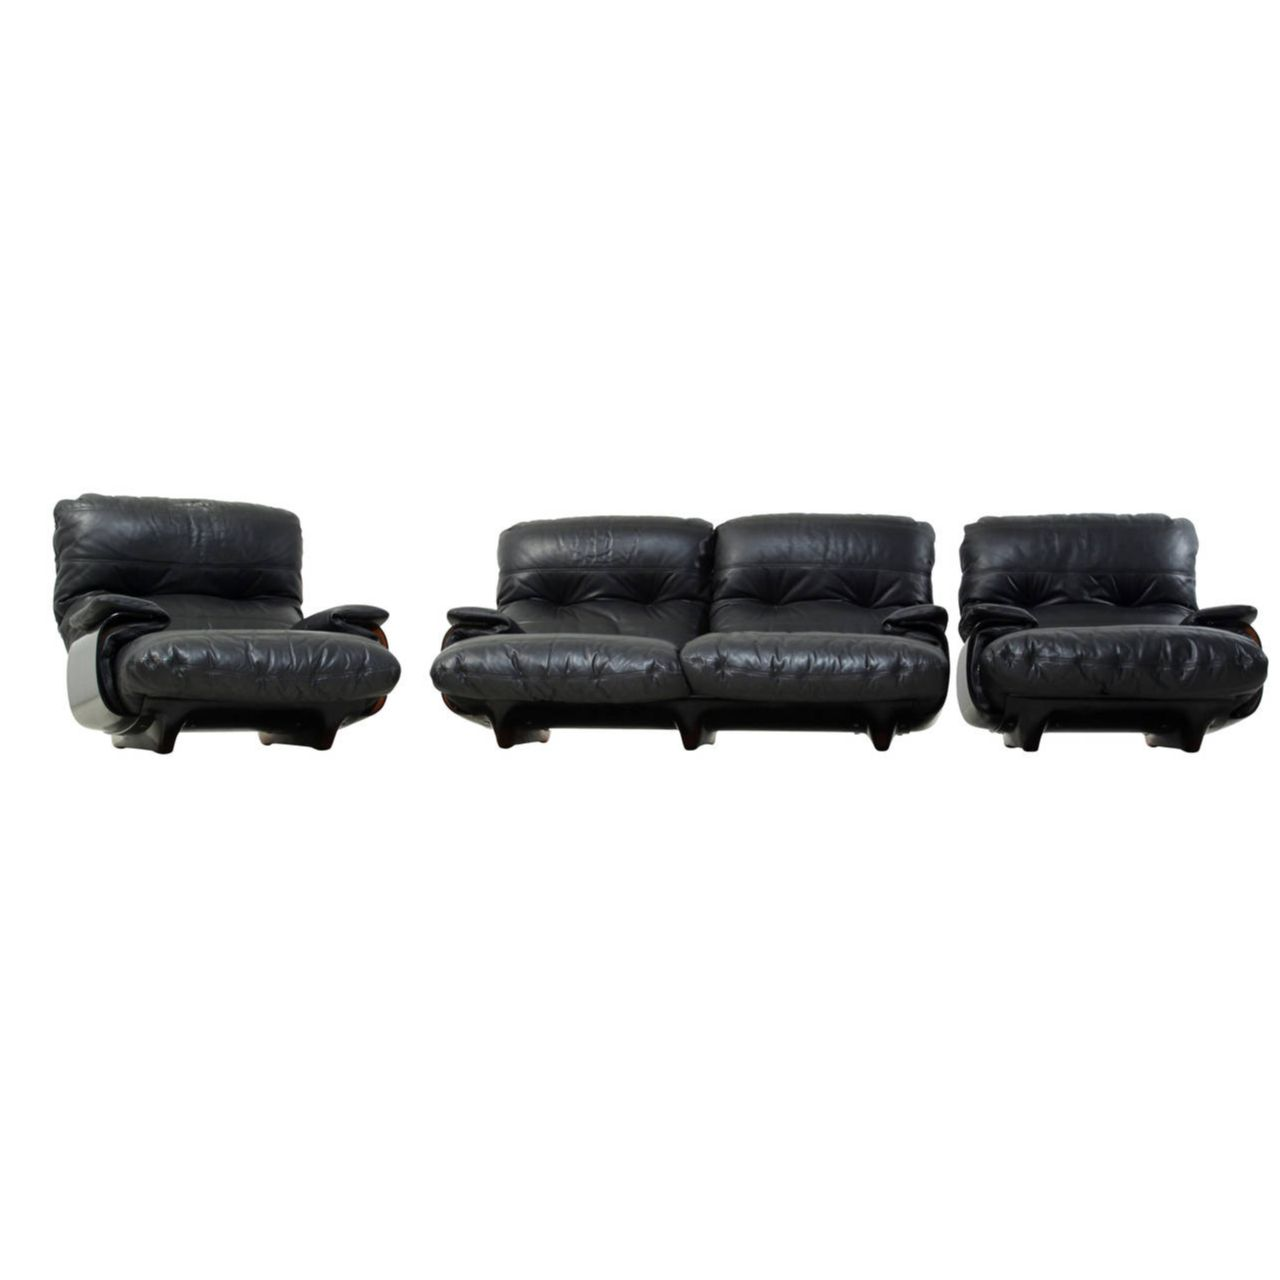 Ligne Roset Sofa Ducaroy Ligne Roset Sofa Set In Brown Perspex With Black Leather